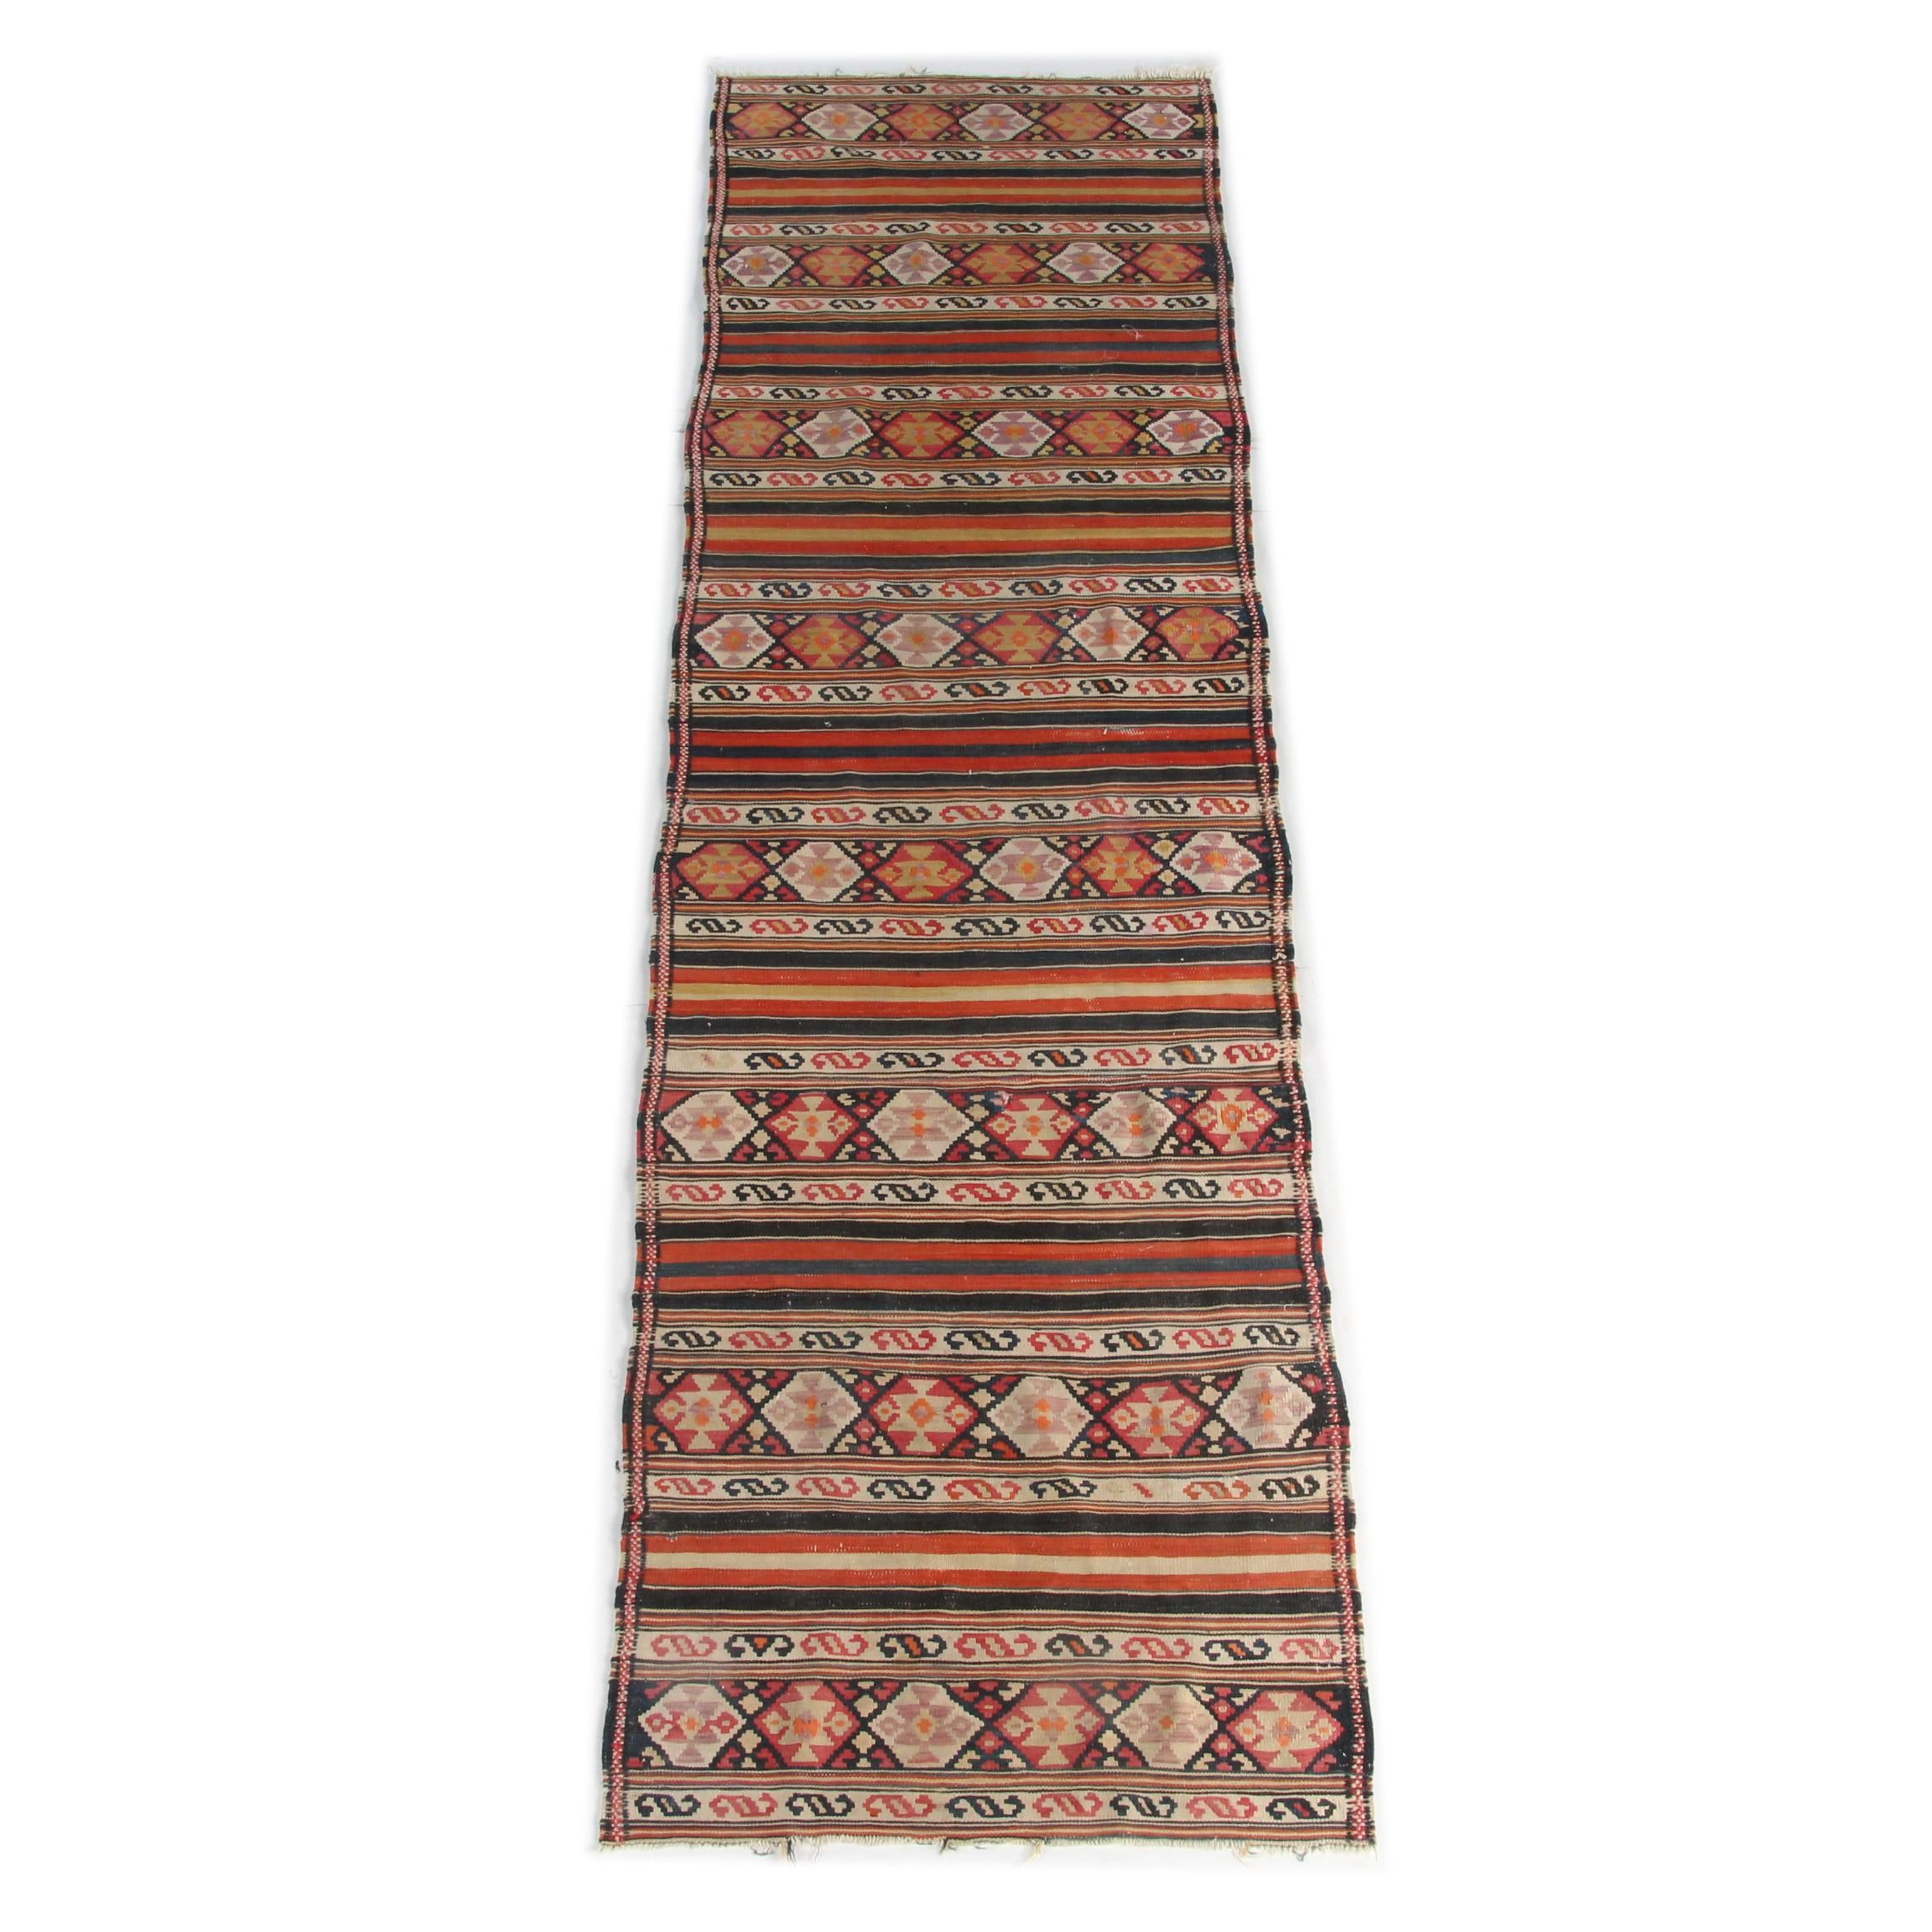 Handwoven and Embroidered Turkish Wool Kilim Runner